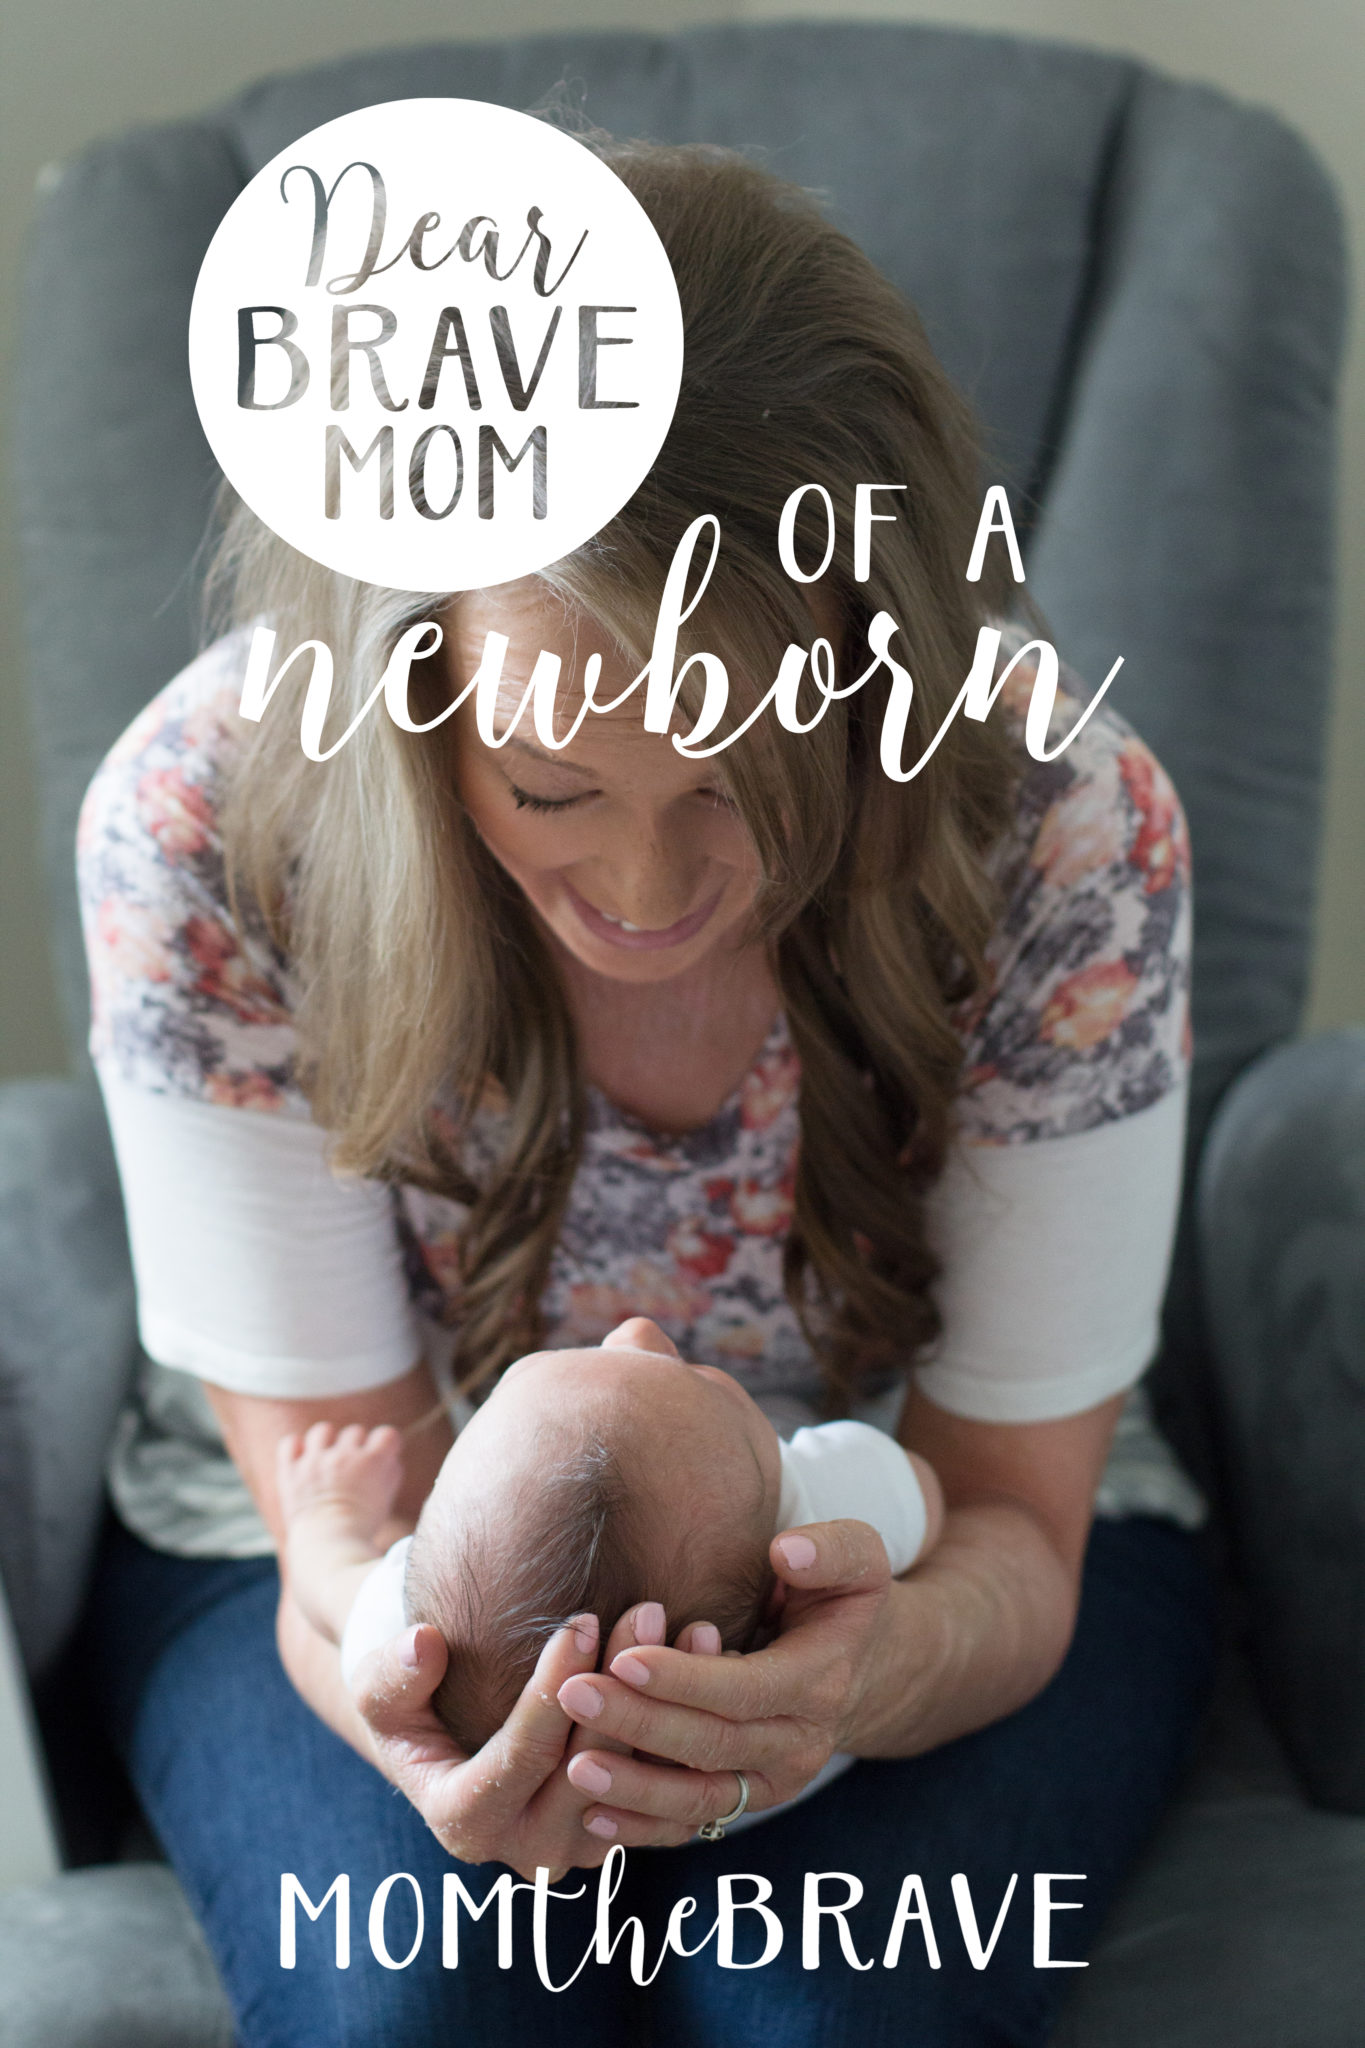 Dear Brave Mom of a Newborn